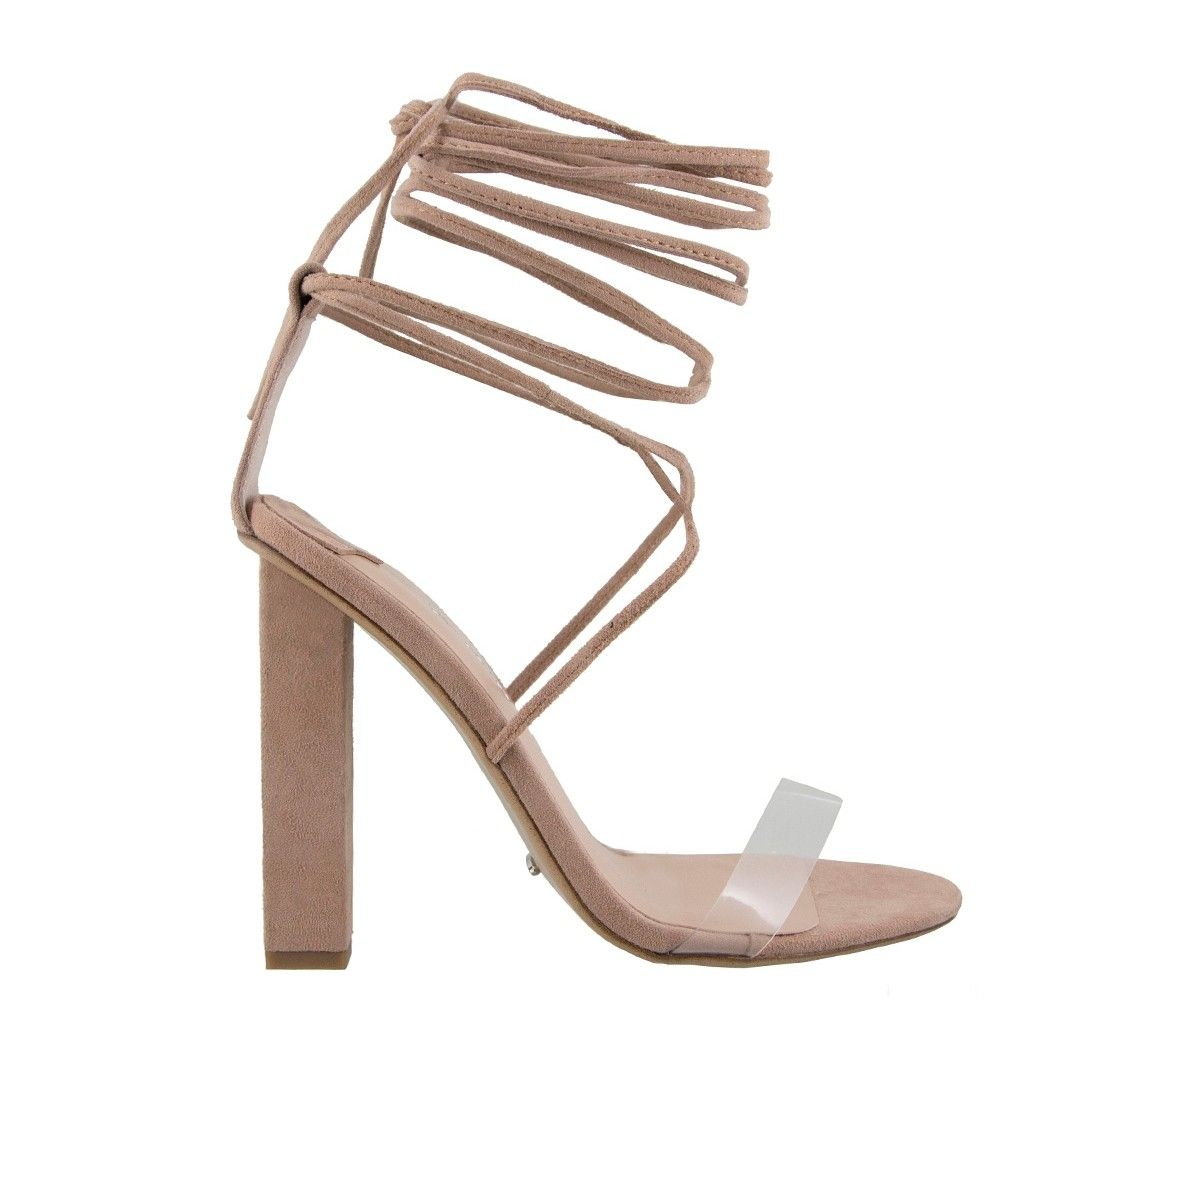 KENDALL Blush Suede Tony BIanco Lace-up Heels